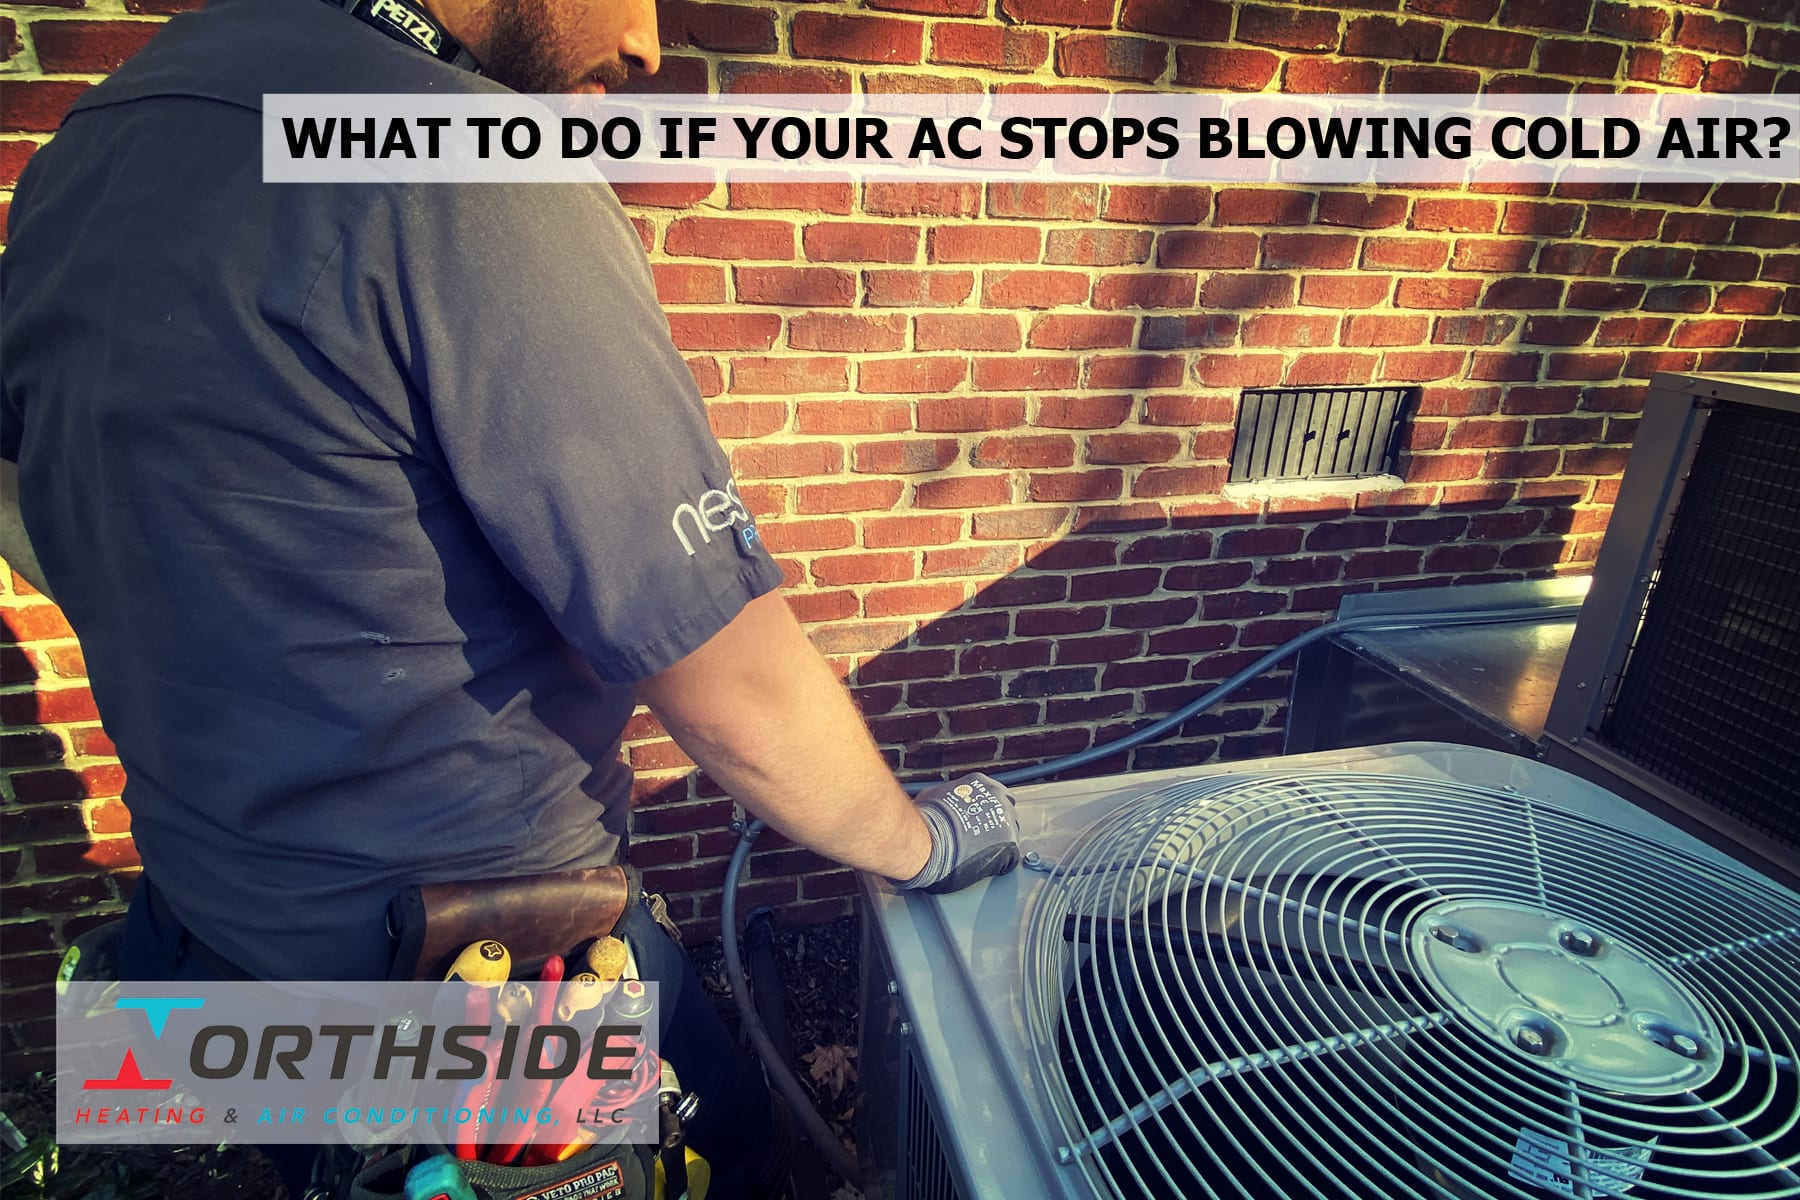 WHAT TO DO IF YOUR AC STOPS BLOWING COLD AIR?